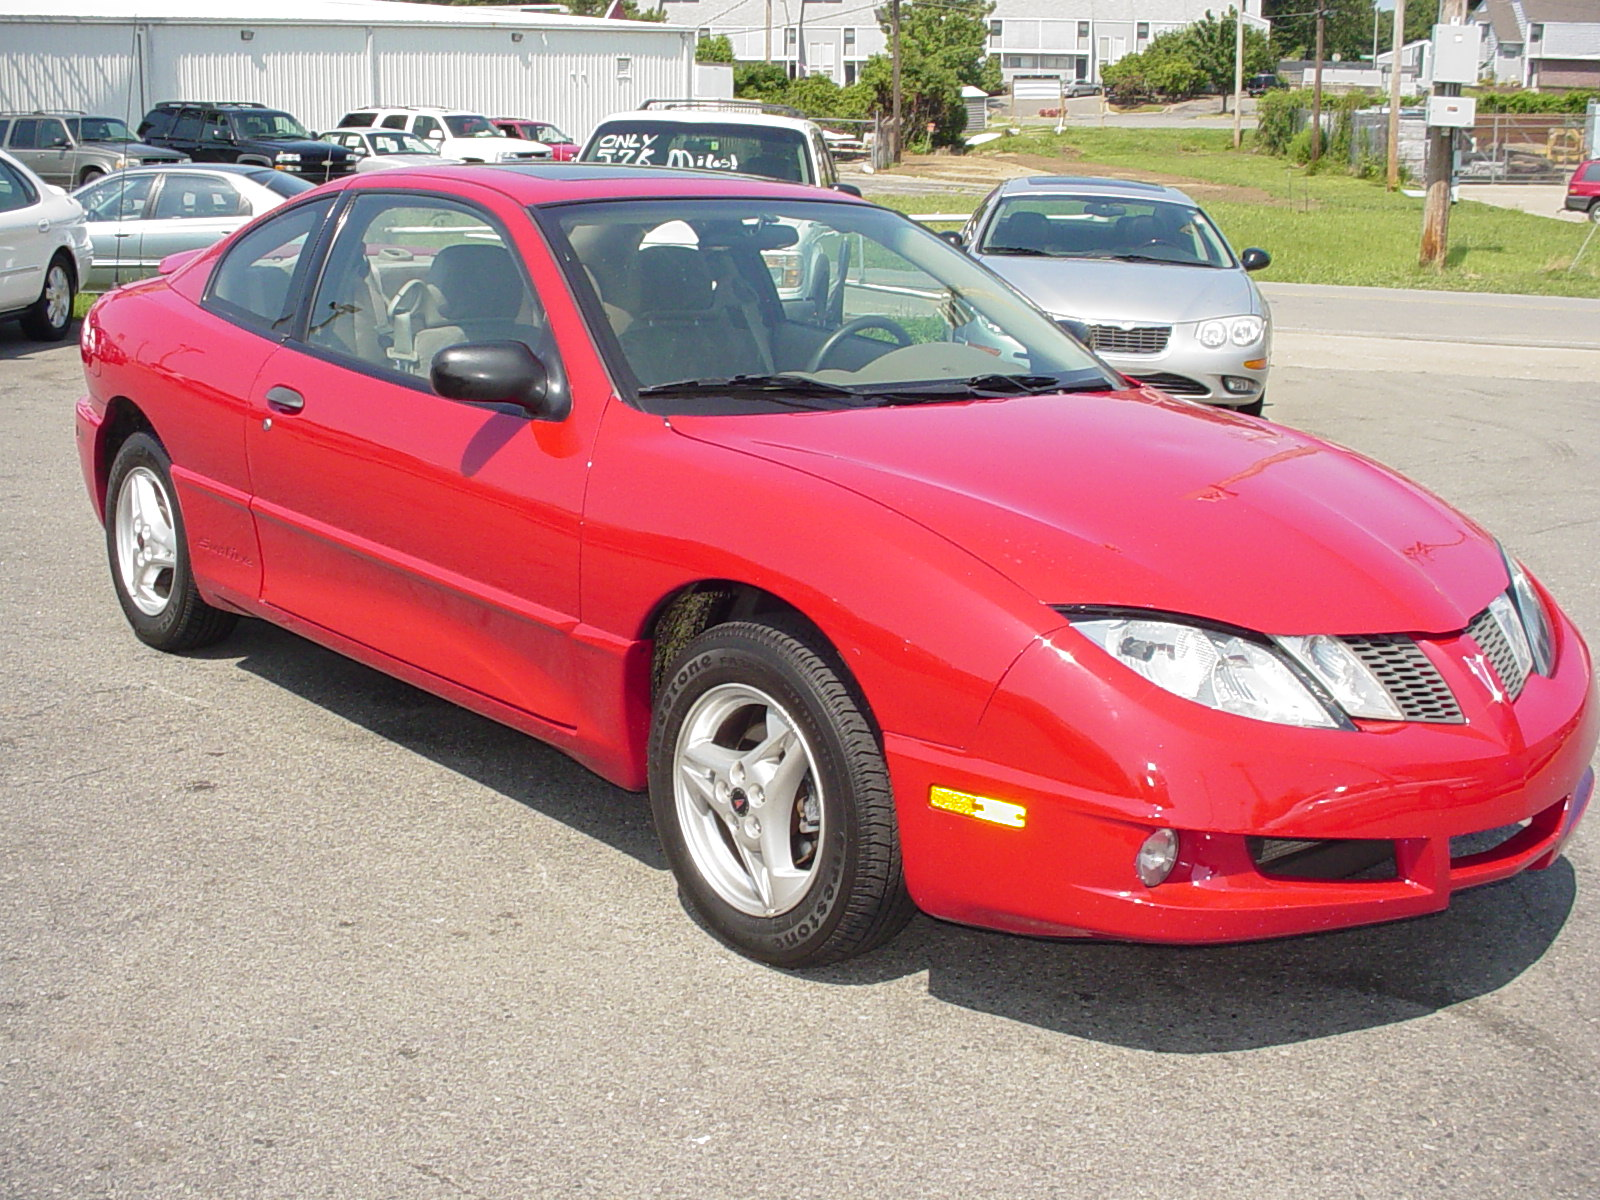 pontiac sunfire photos informations articles bestcarmag com pontiac sunfire photos informations